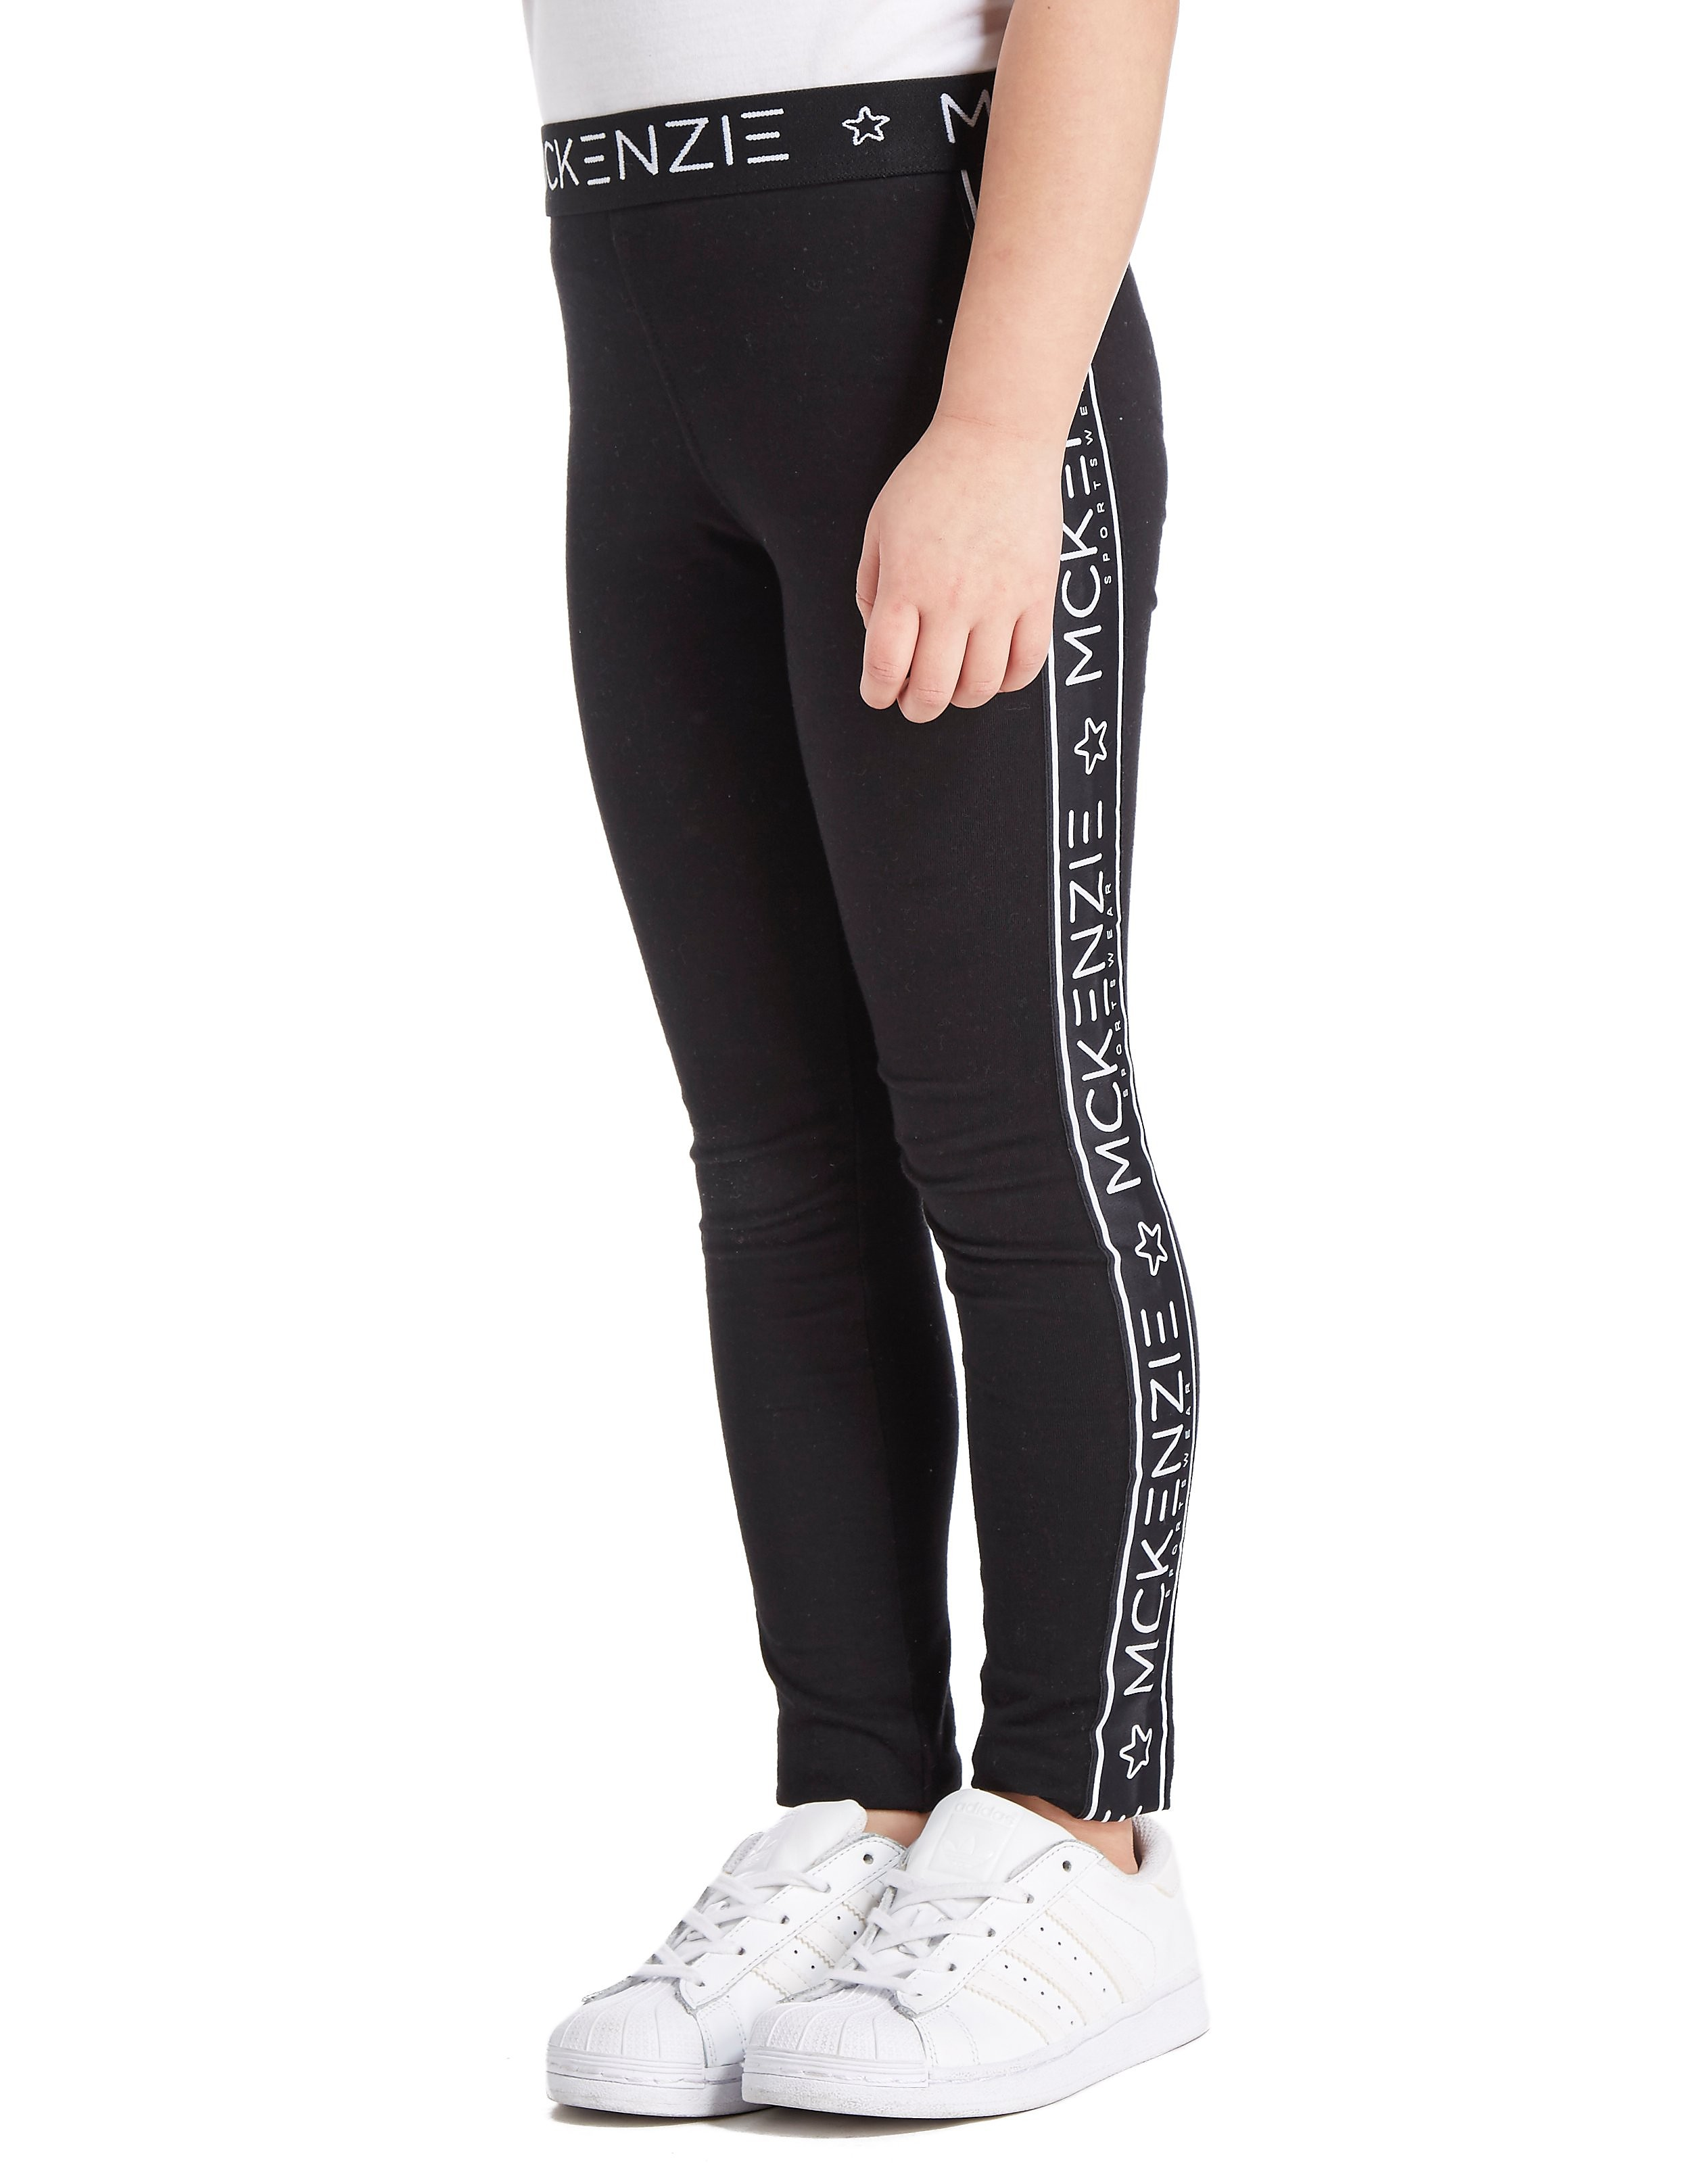 McKenzie Girls' Ella Leggings Children